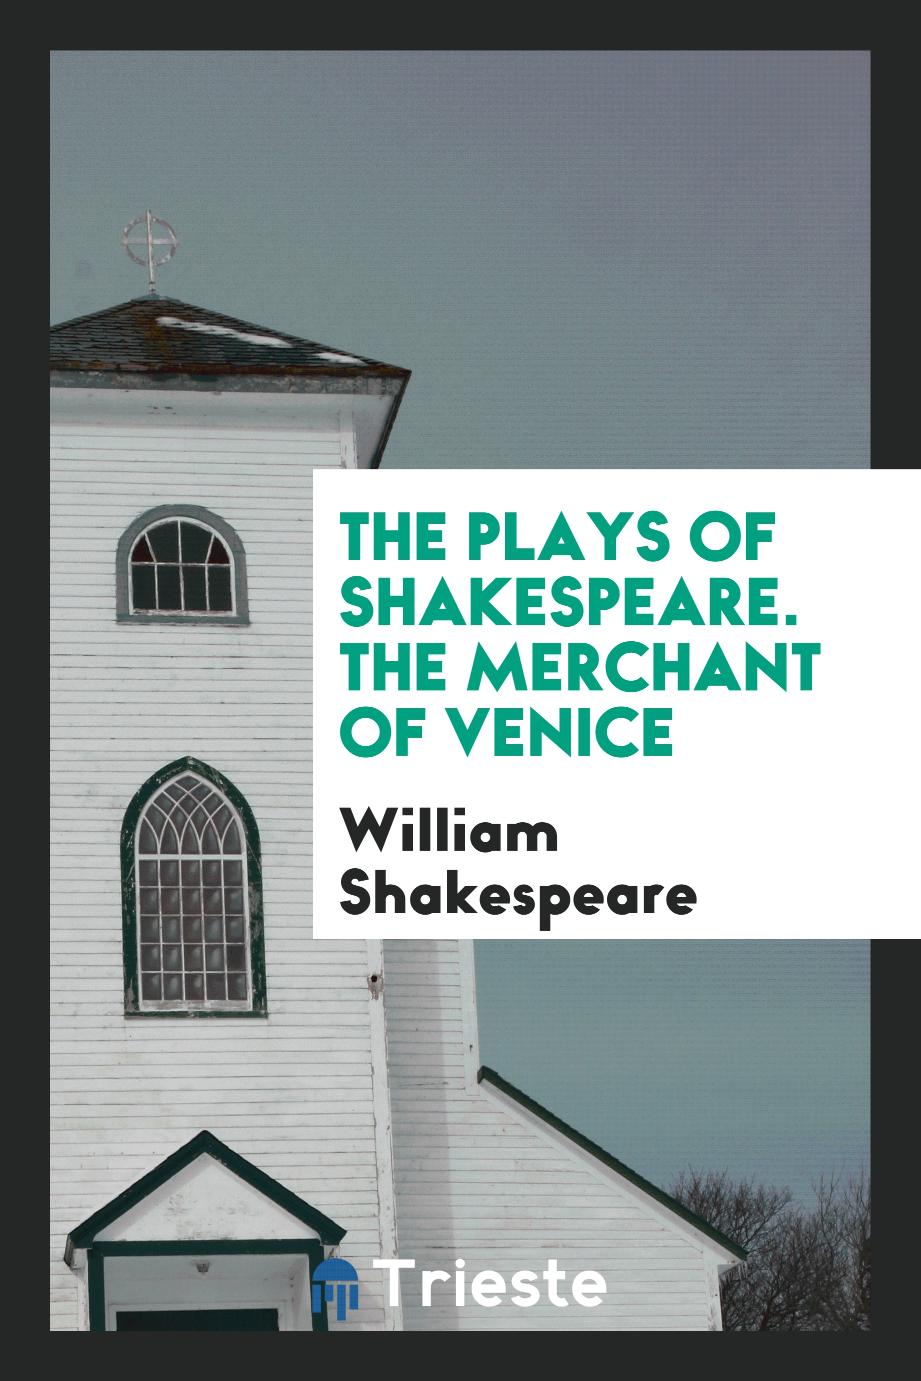 The Plays of Shakespeare. The Merchant of Venice